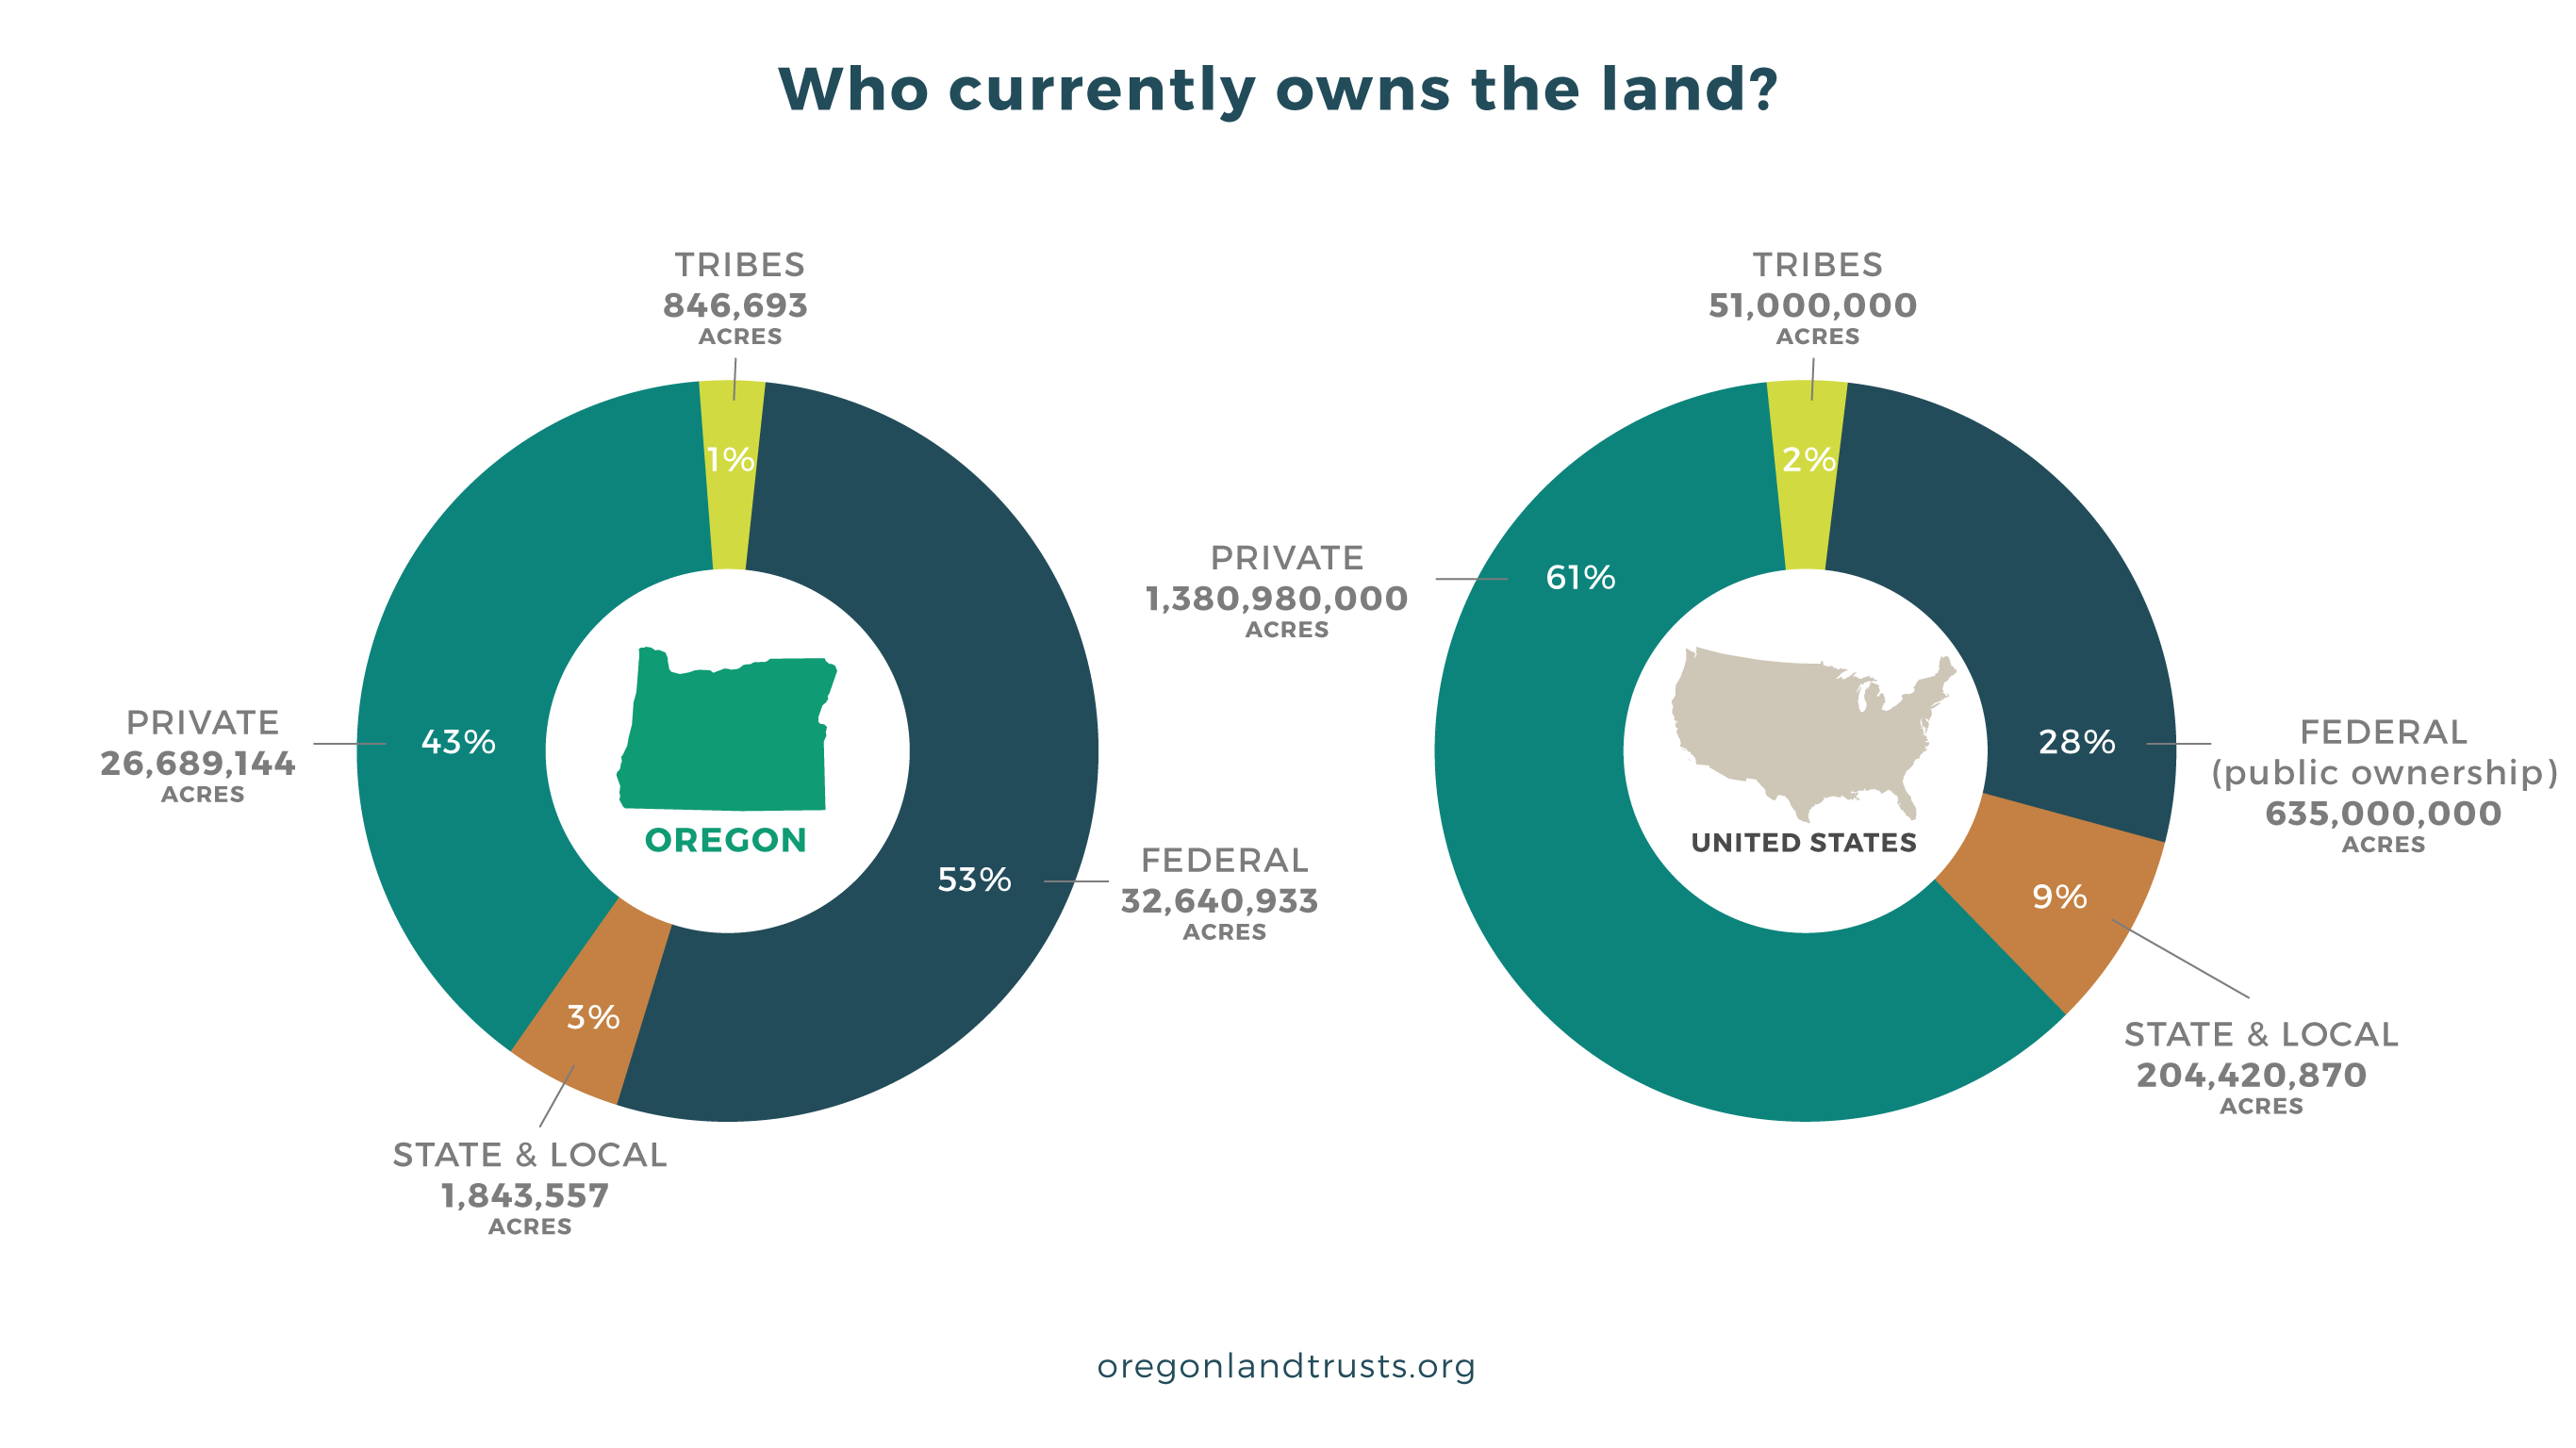 Coalition of Oregon Land Trusts. Land Ownership Stats Facts OREGON and the US